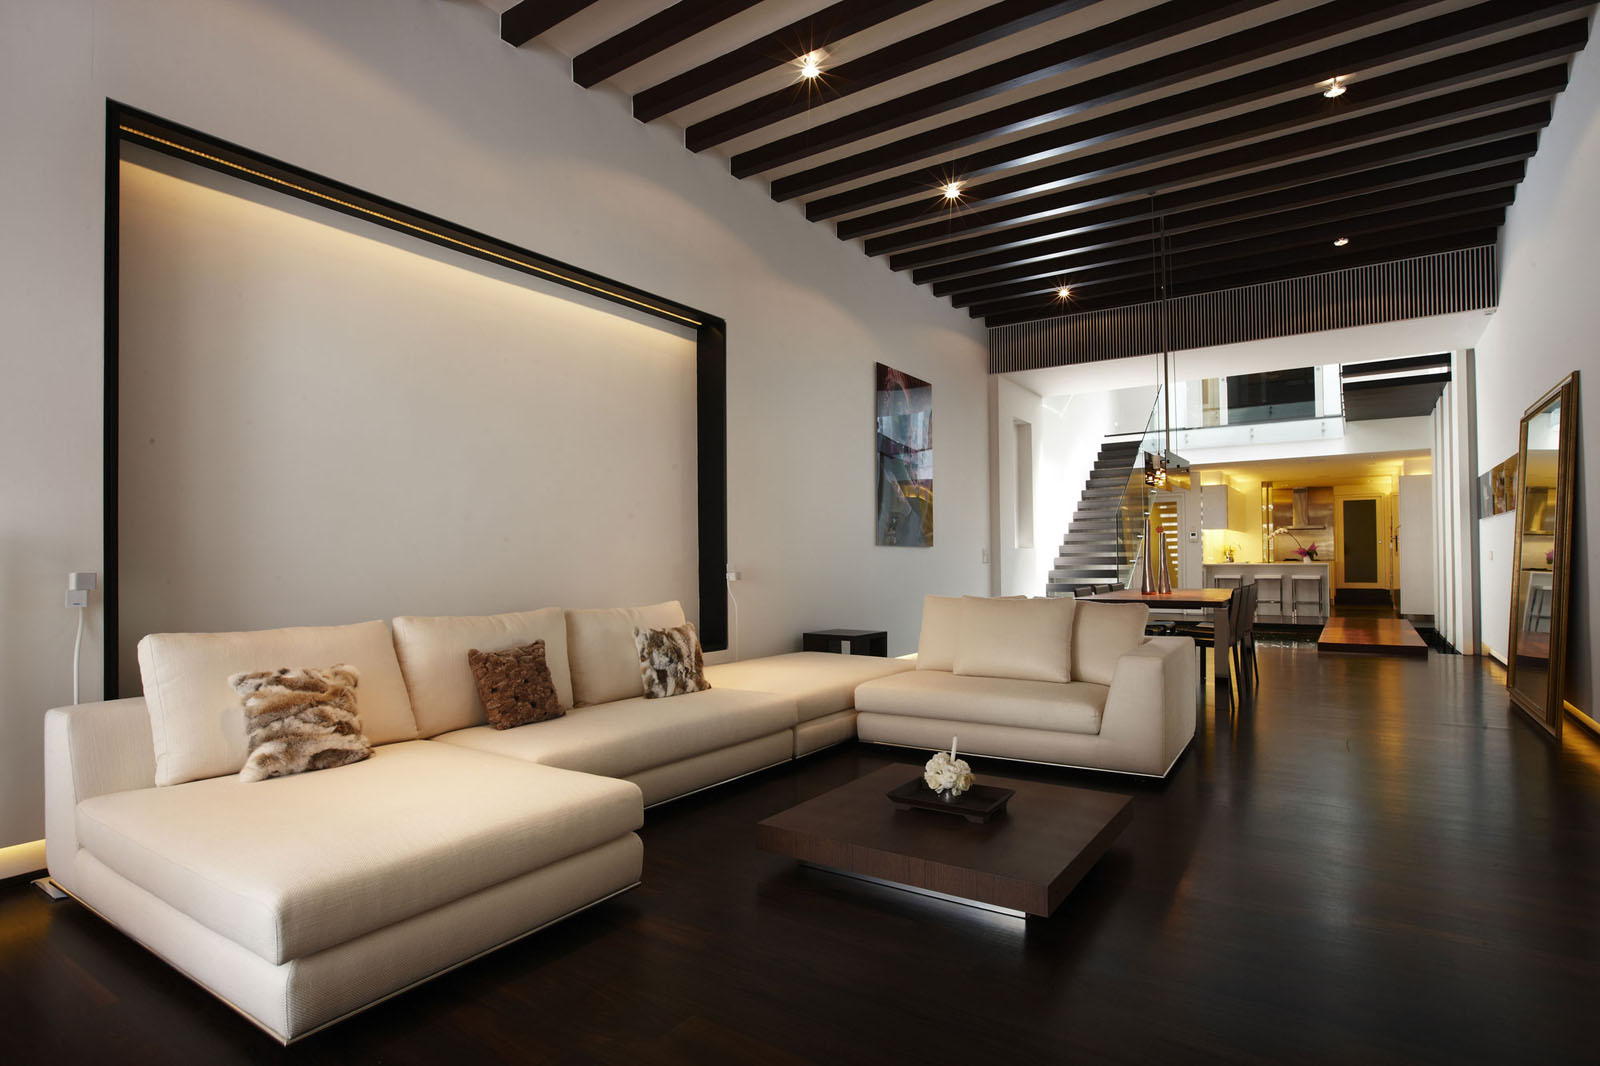 High Quality Singapore Contemporary Home Interiors. RichardHO Architects Designed The  Luxury ...